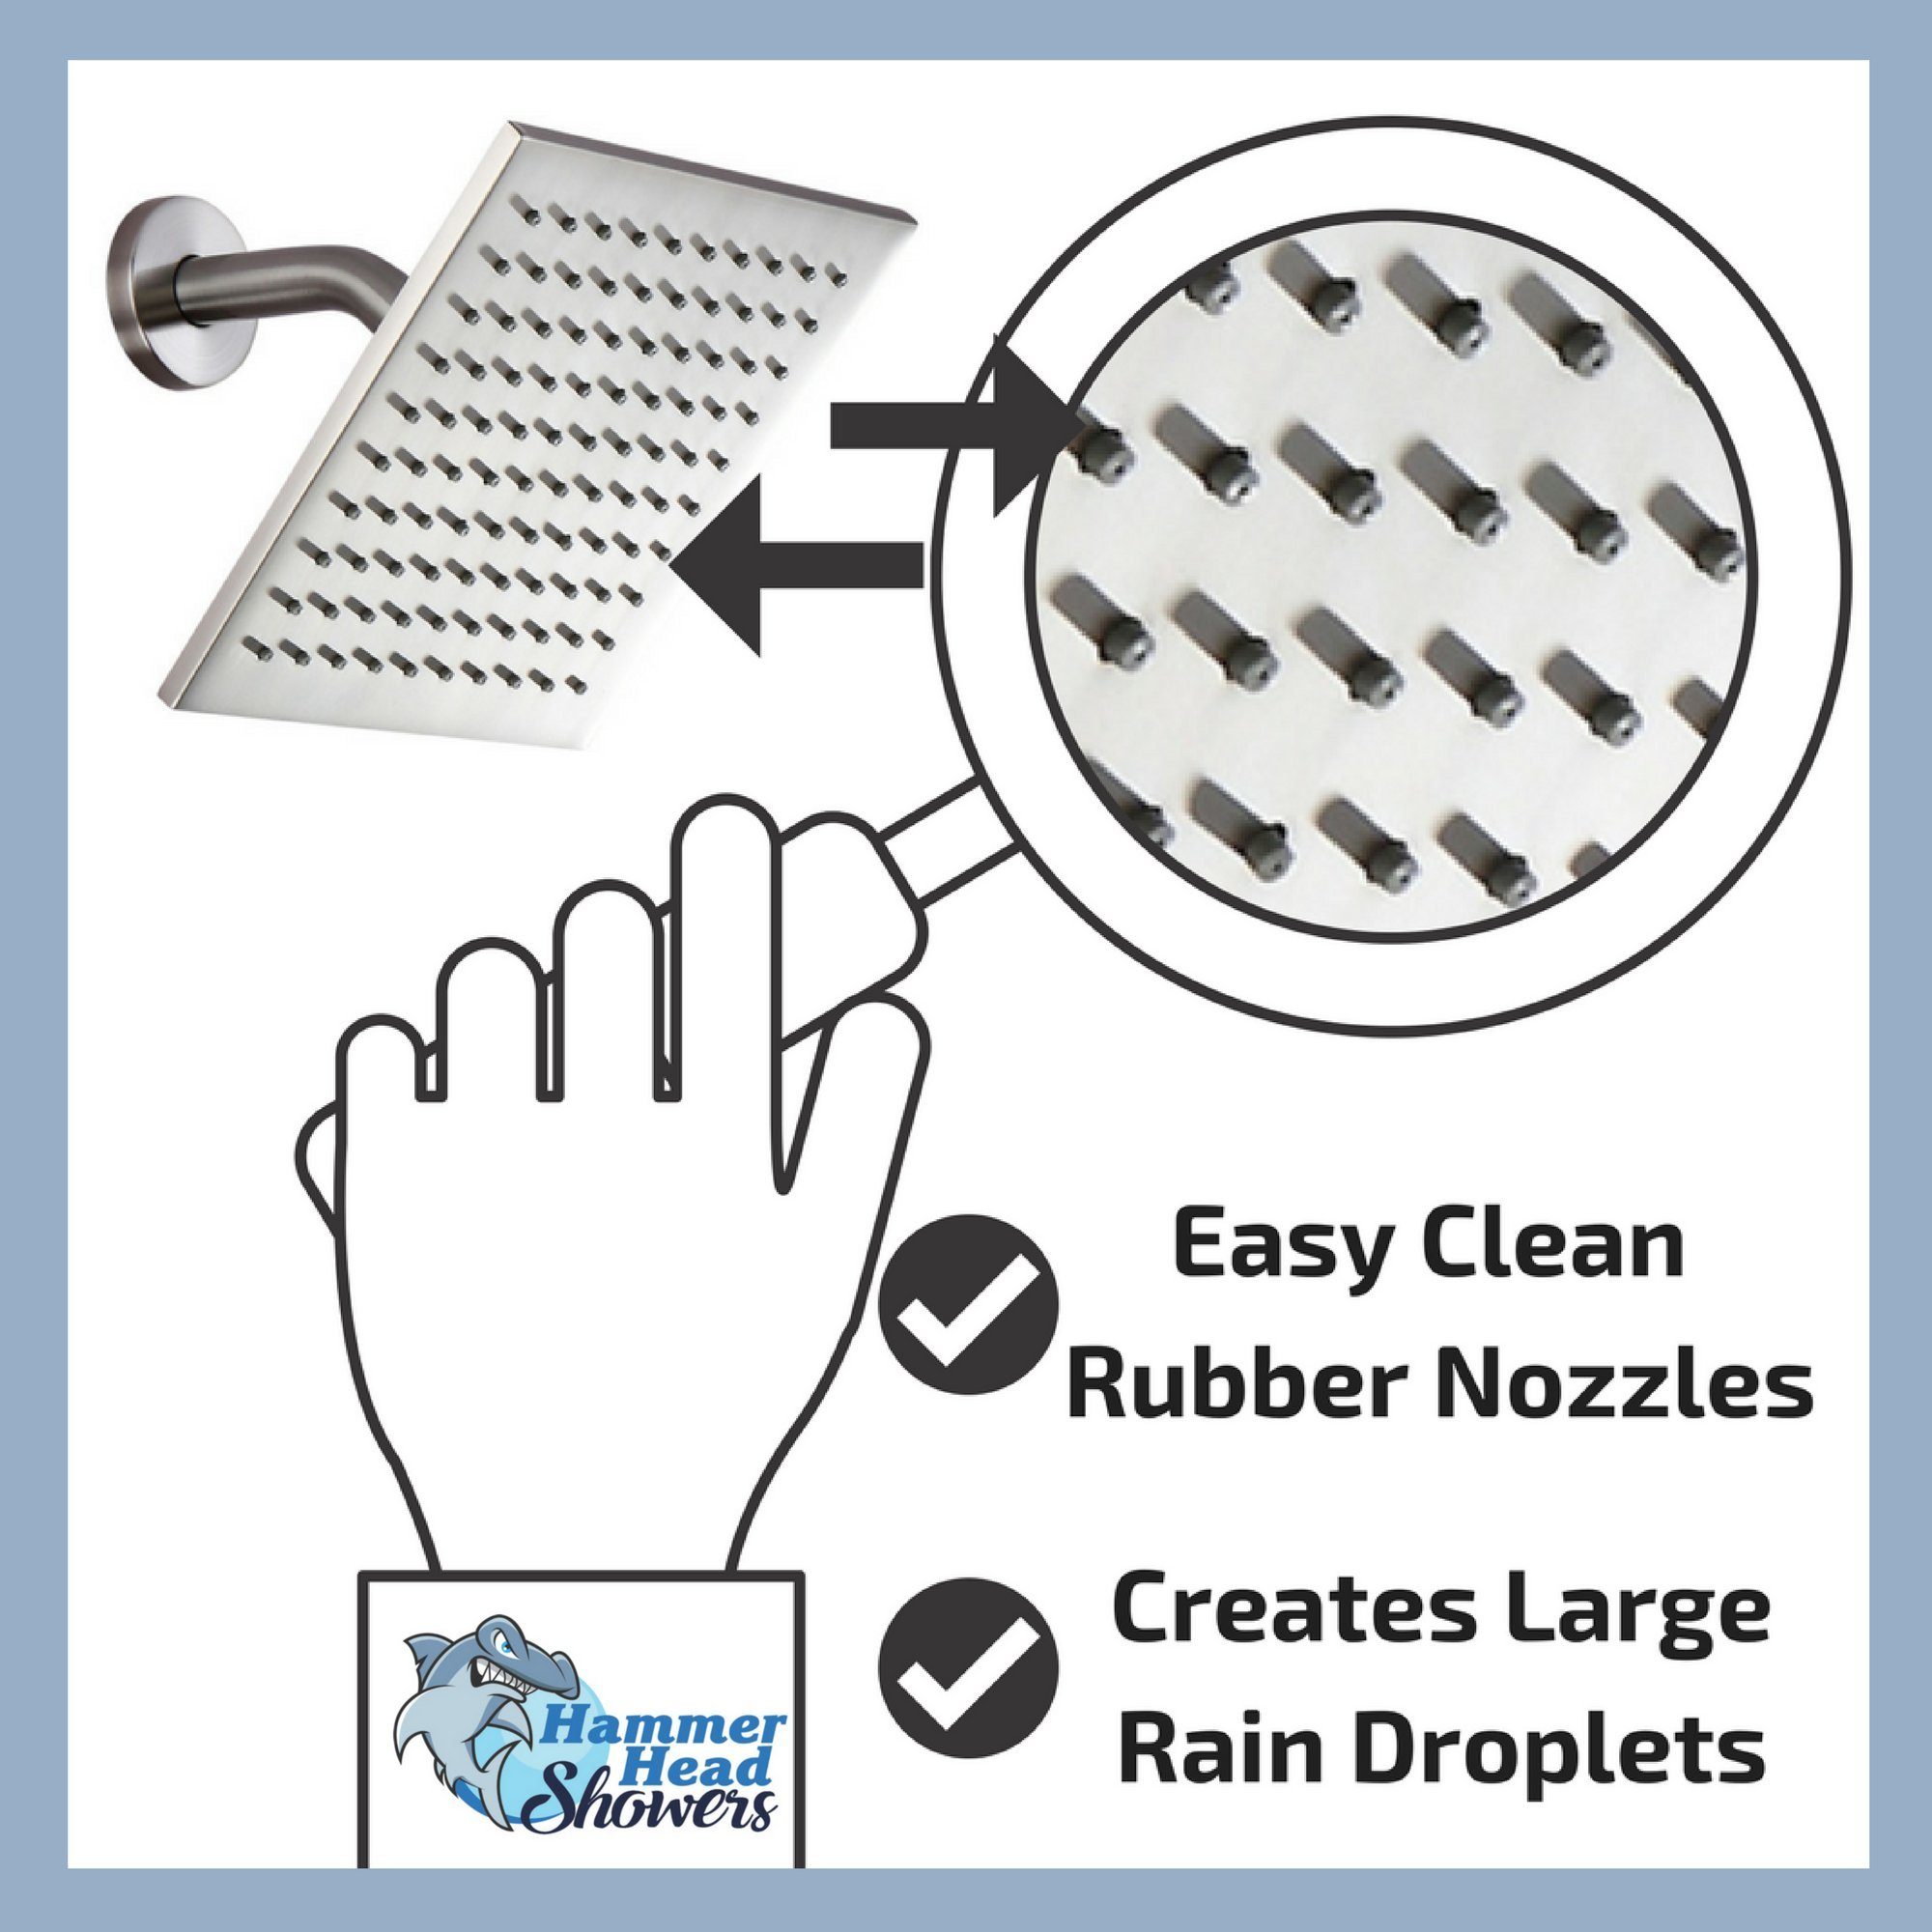 100% METAL Rain Shower Head Square 8 Inch Rainfall Showerhead with 2.5 GPM High Pressure Water Flow | Large Luxury Rainshower for Wall Mount, Overhead, or Ceiling Mounted Waterfall | Brushed Nickel by HammerHead Showers (Image #5)